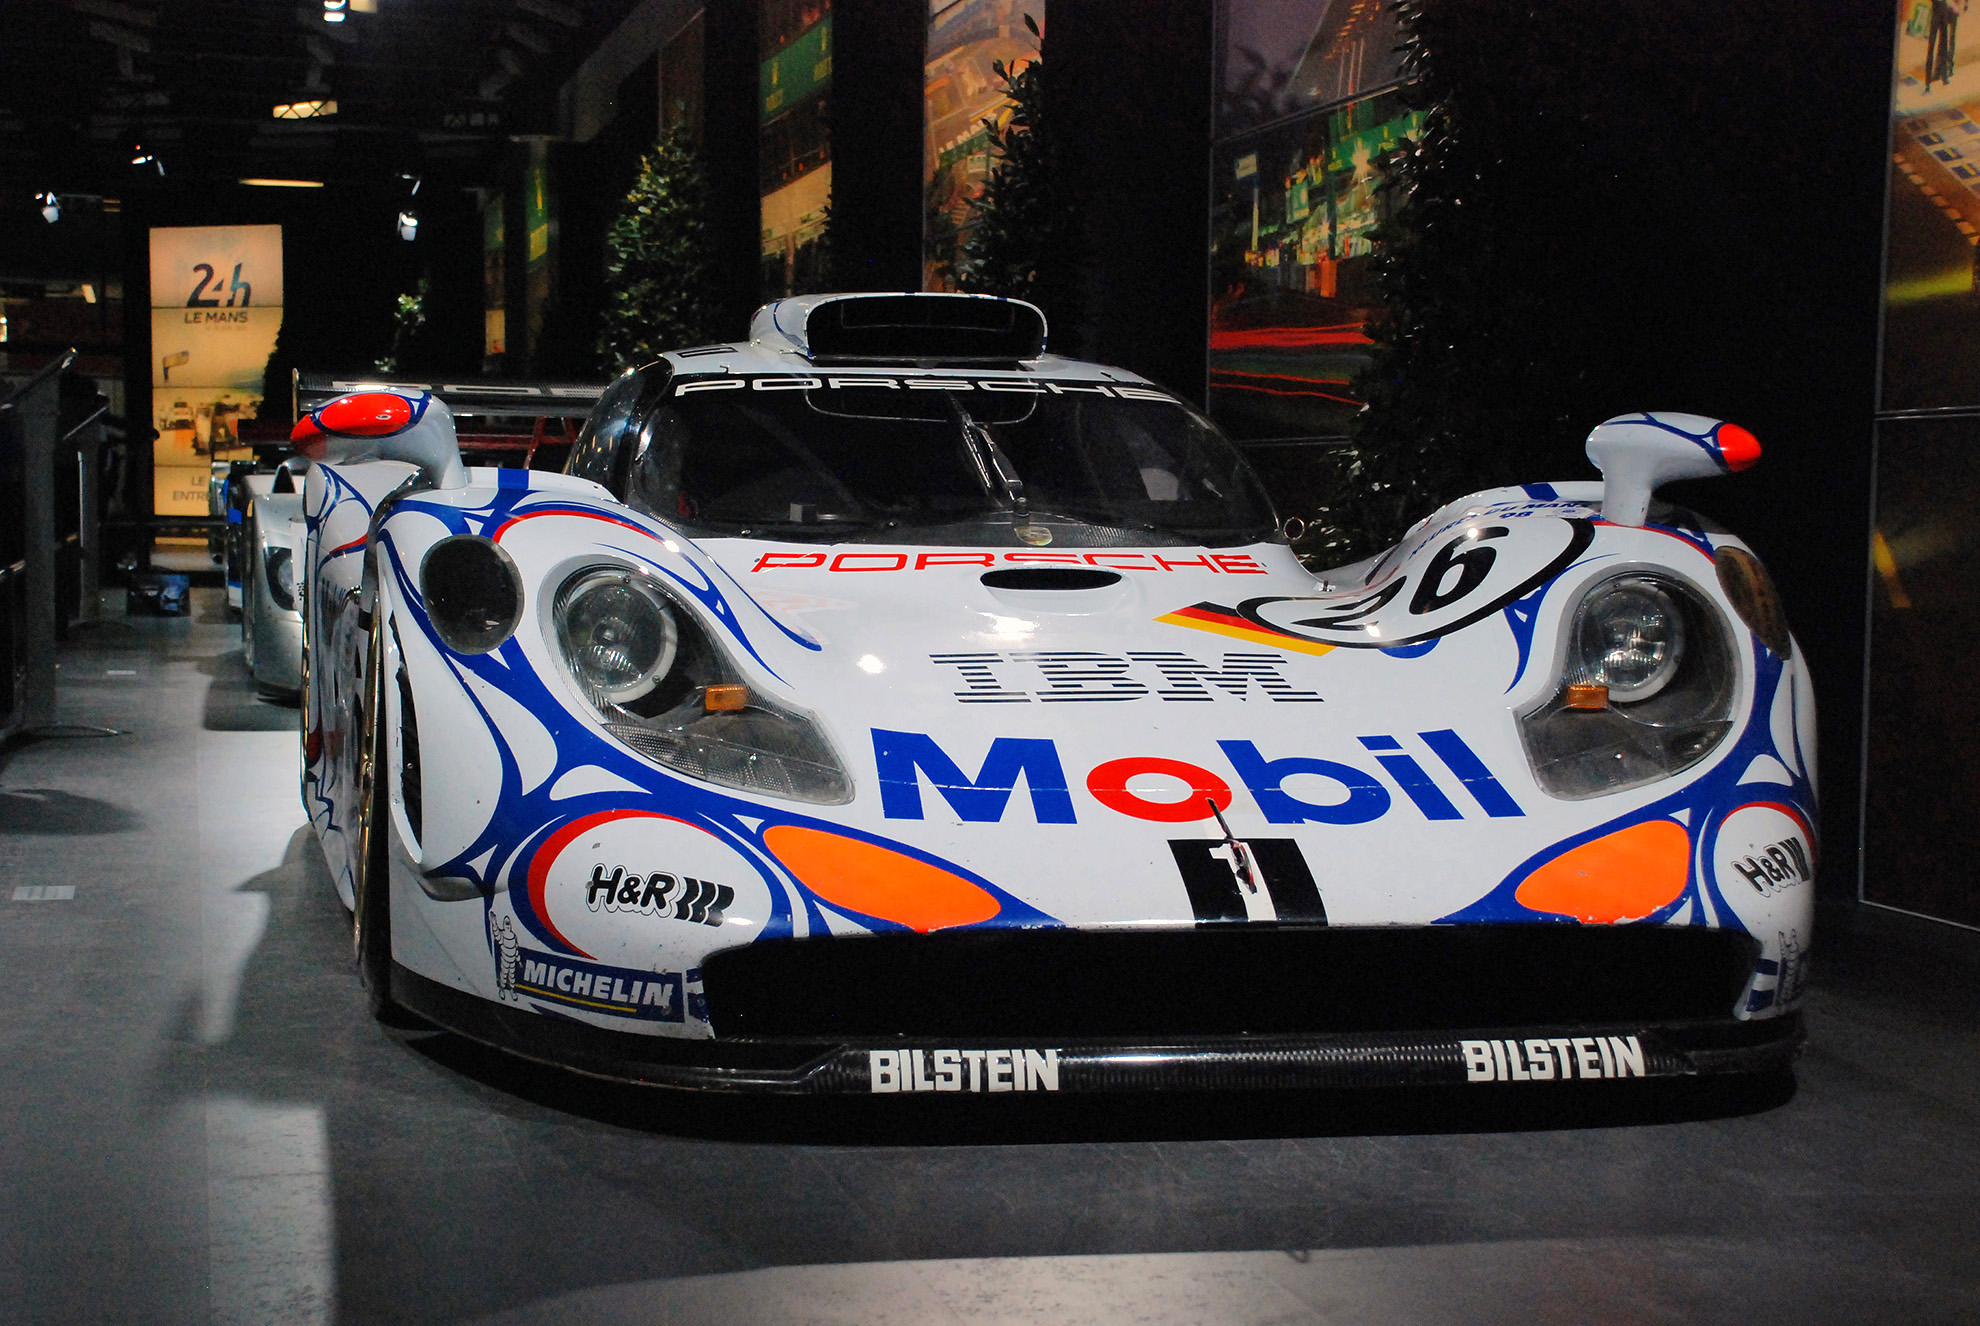 file porsche 911 gt1 n 26 winner of the 1998 24h of le mans race jpg wiki. Black Bedroom Furniture Sets. Home Design Ideas